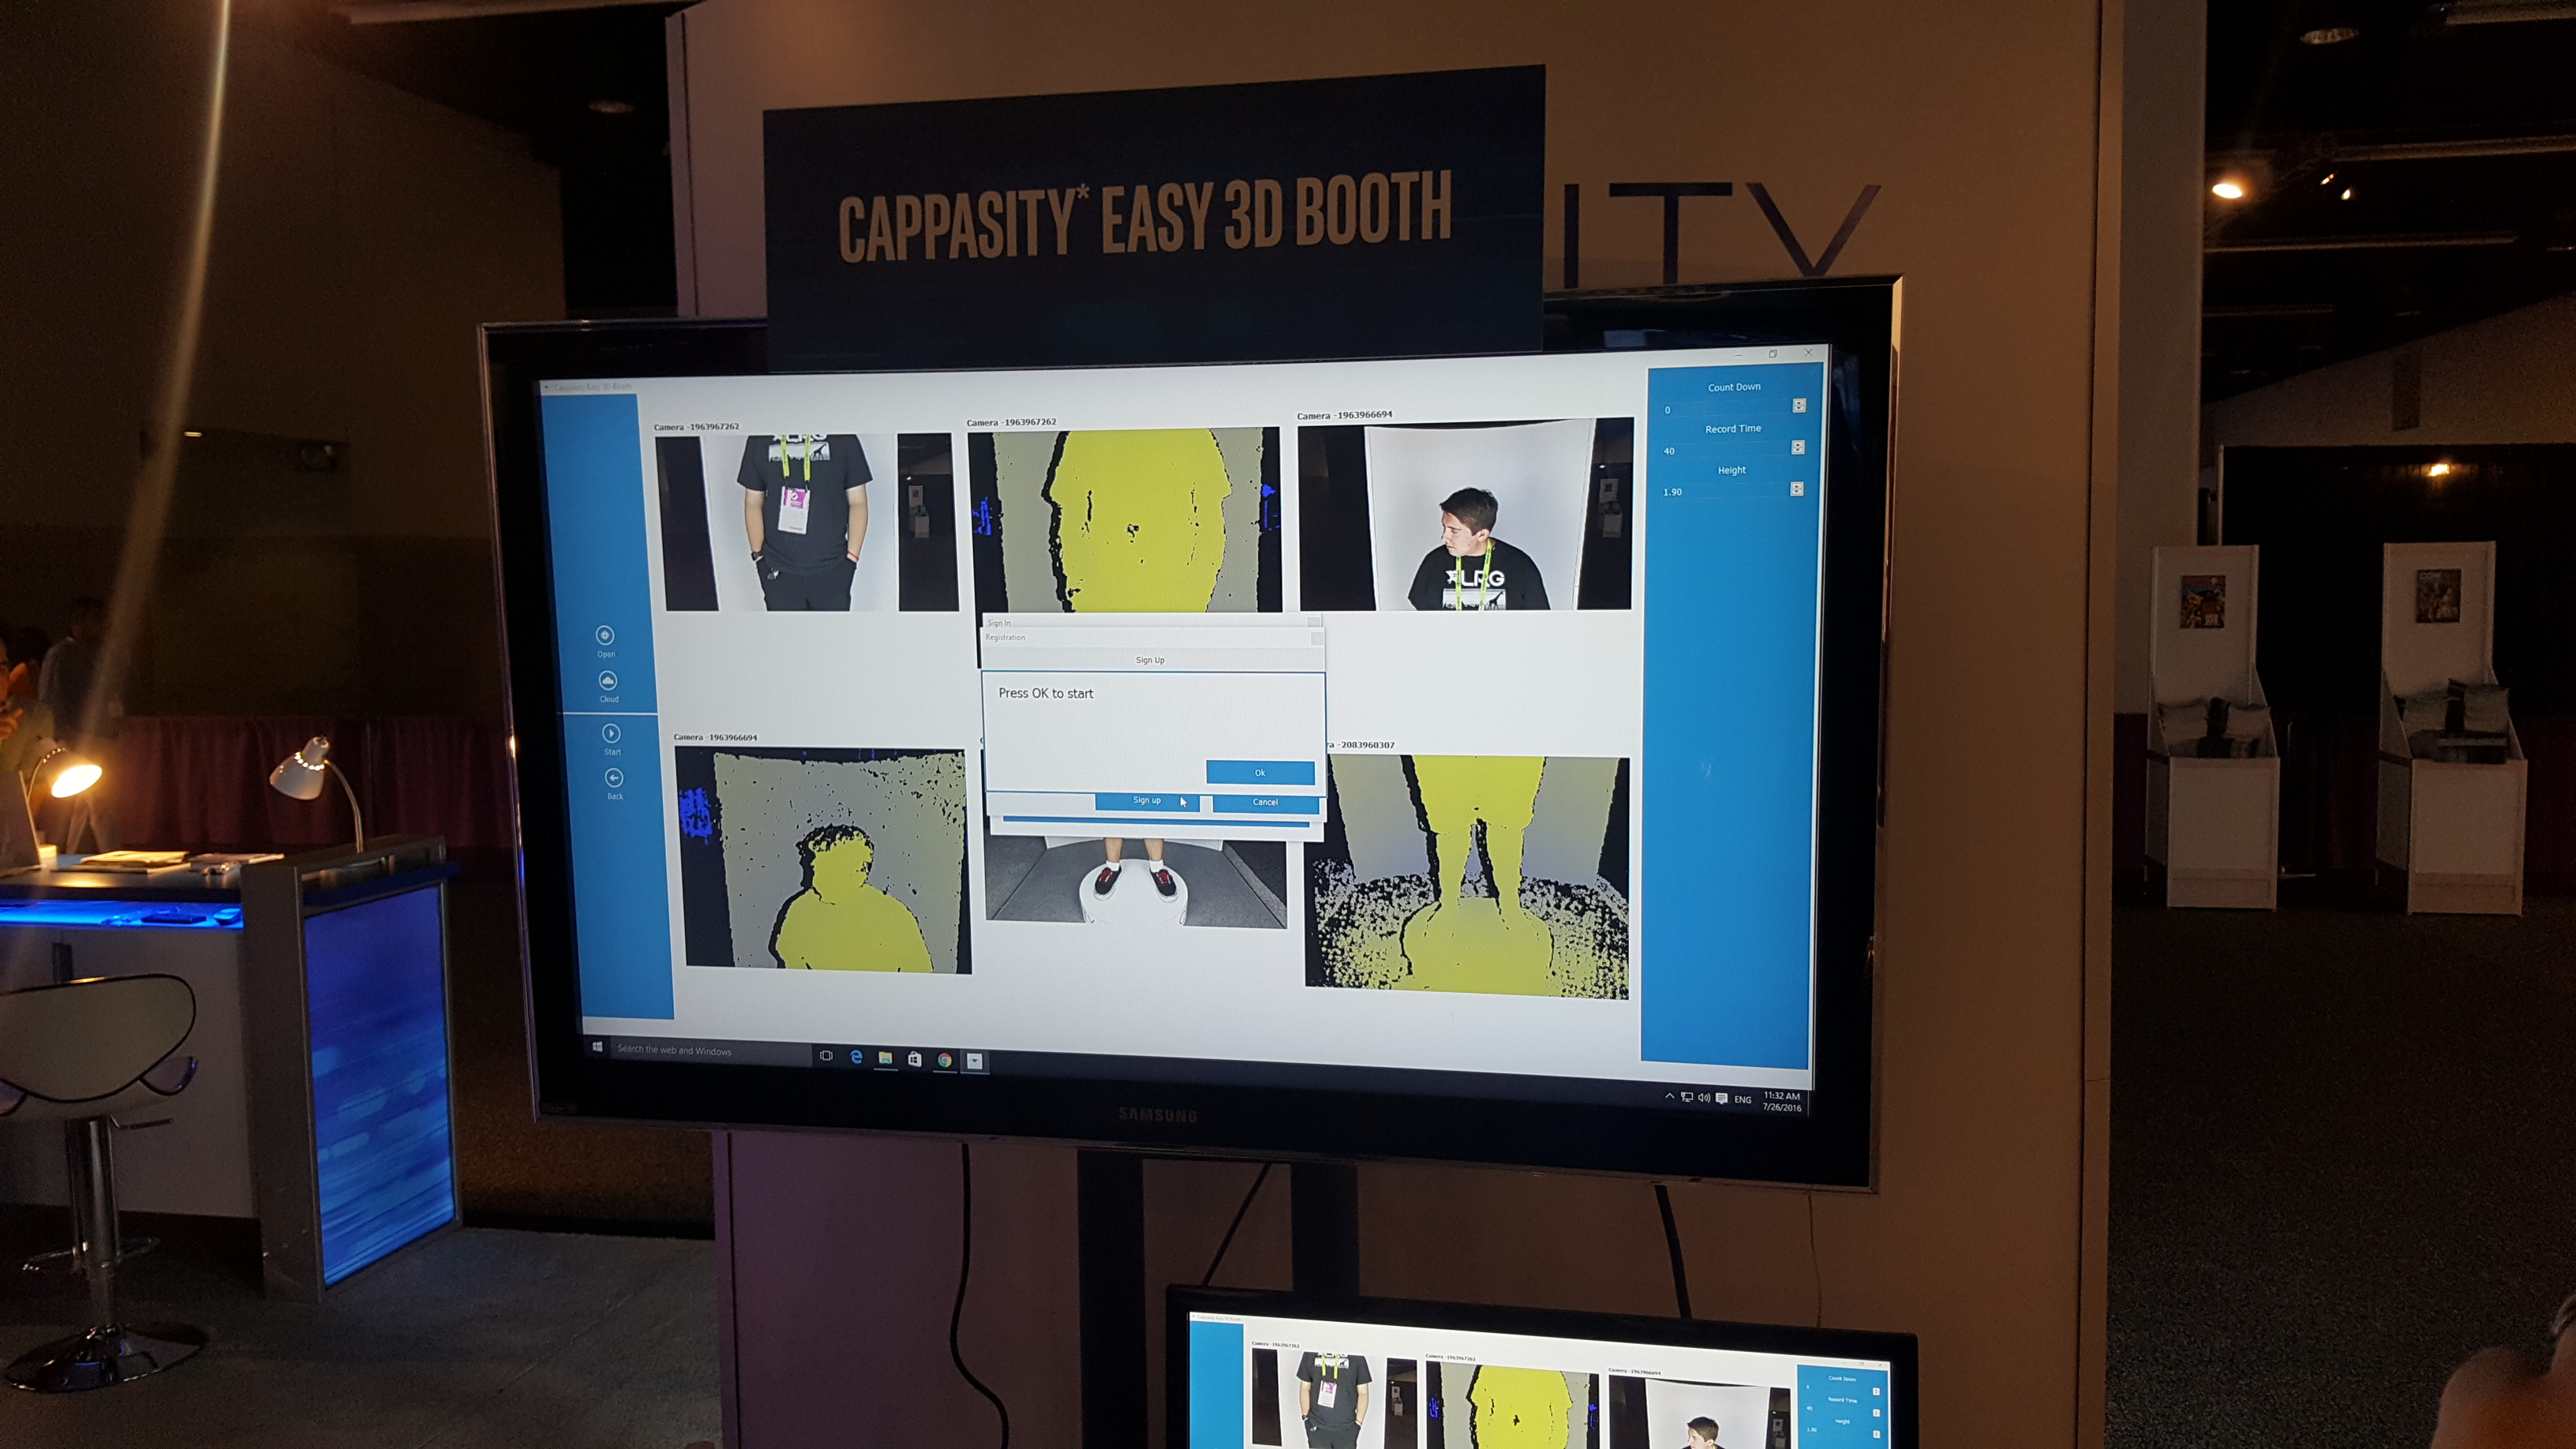 Cappasity was on hand showing off there economical 3D rendering software.